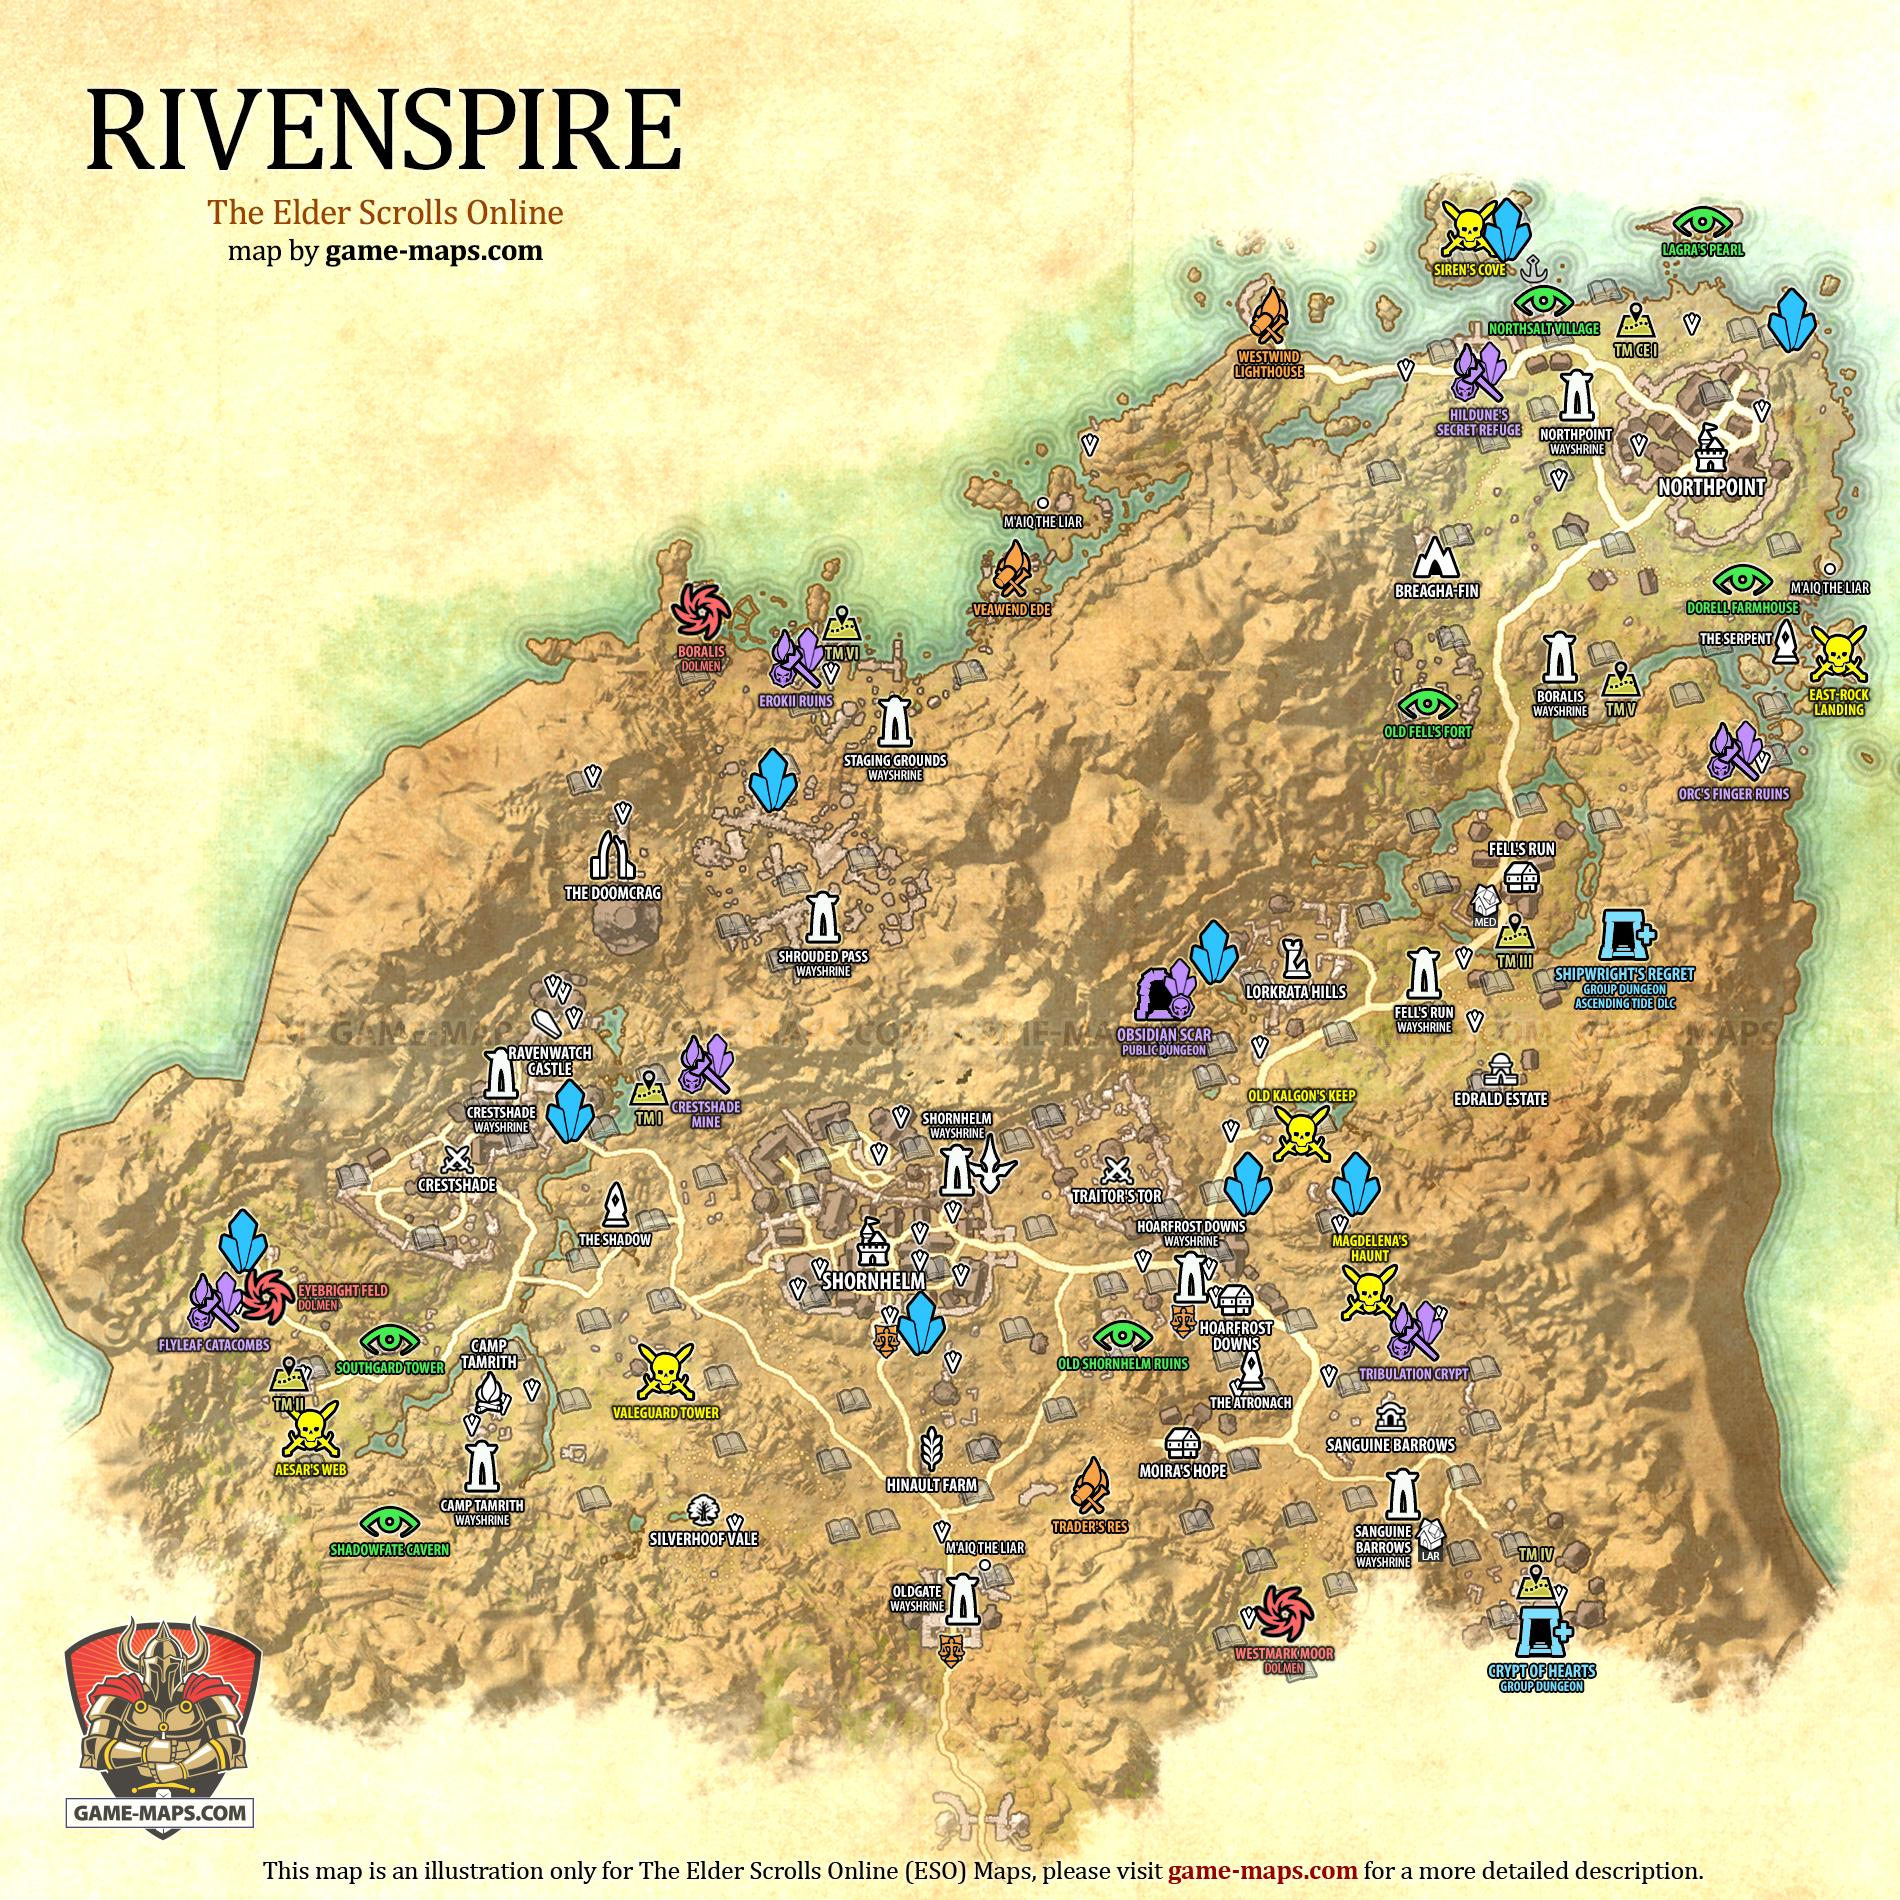 Find cities on world map game picture ideas references find cities on world map game rivenspire zone map shornhelm north point the elder scrolls online gumiabroncs Images